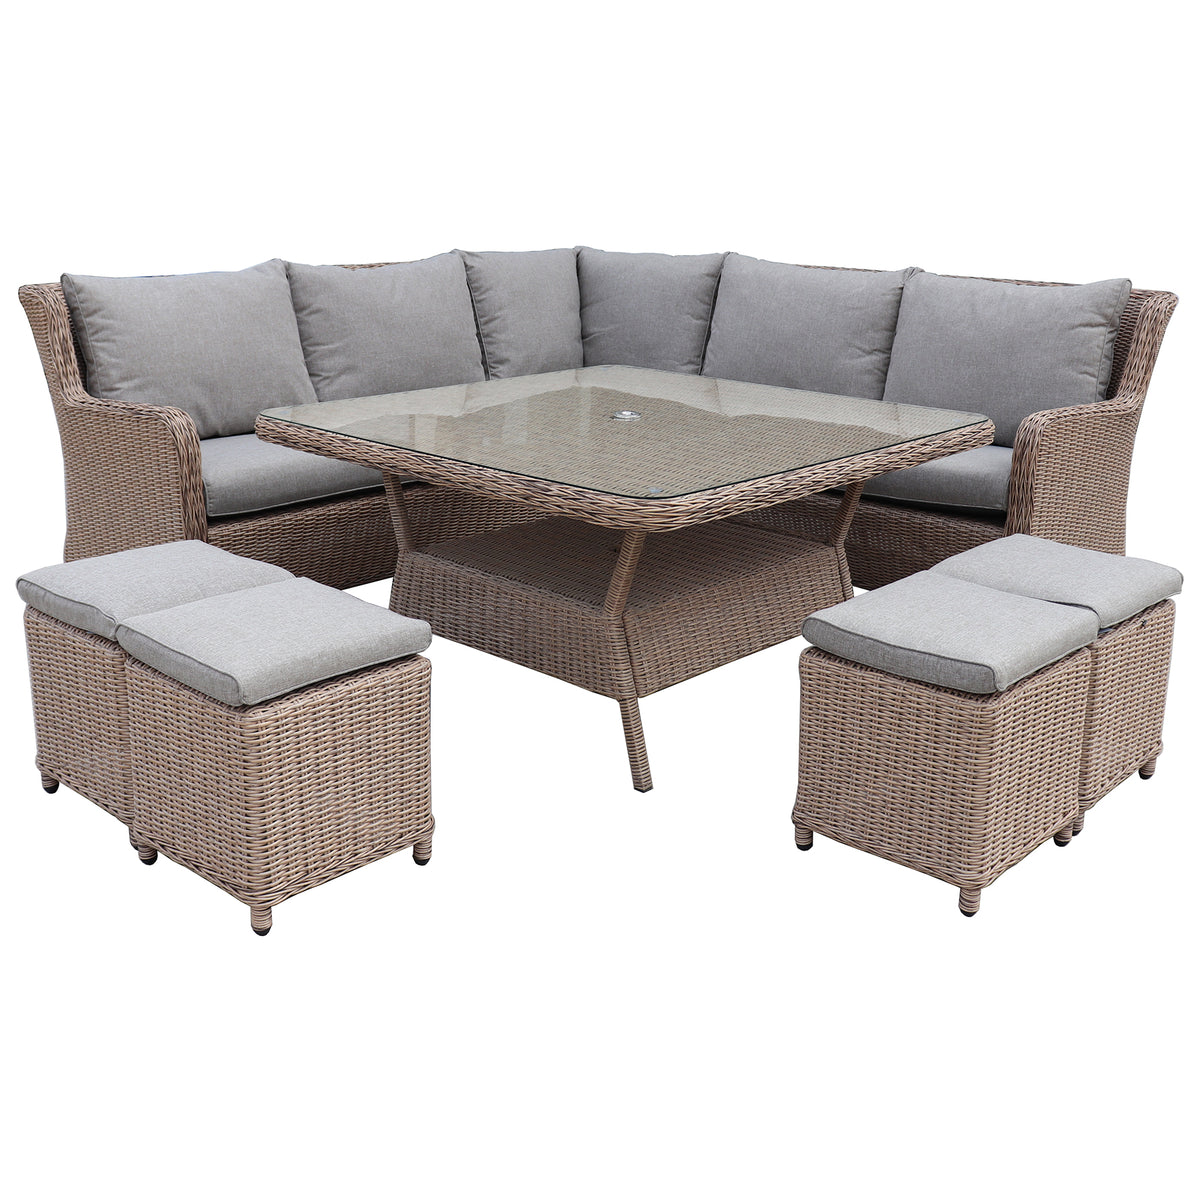 Robert charles hawaii high back corner outdoor lounge dining set garden trends